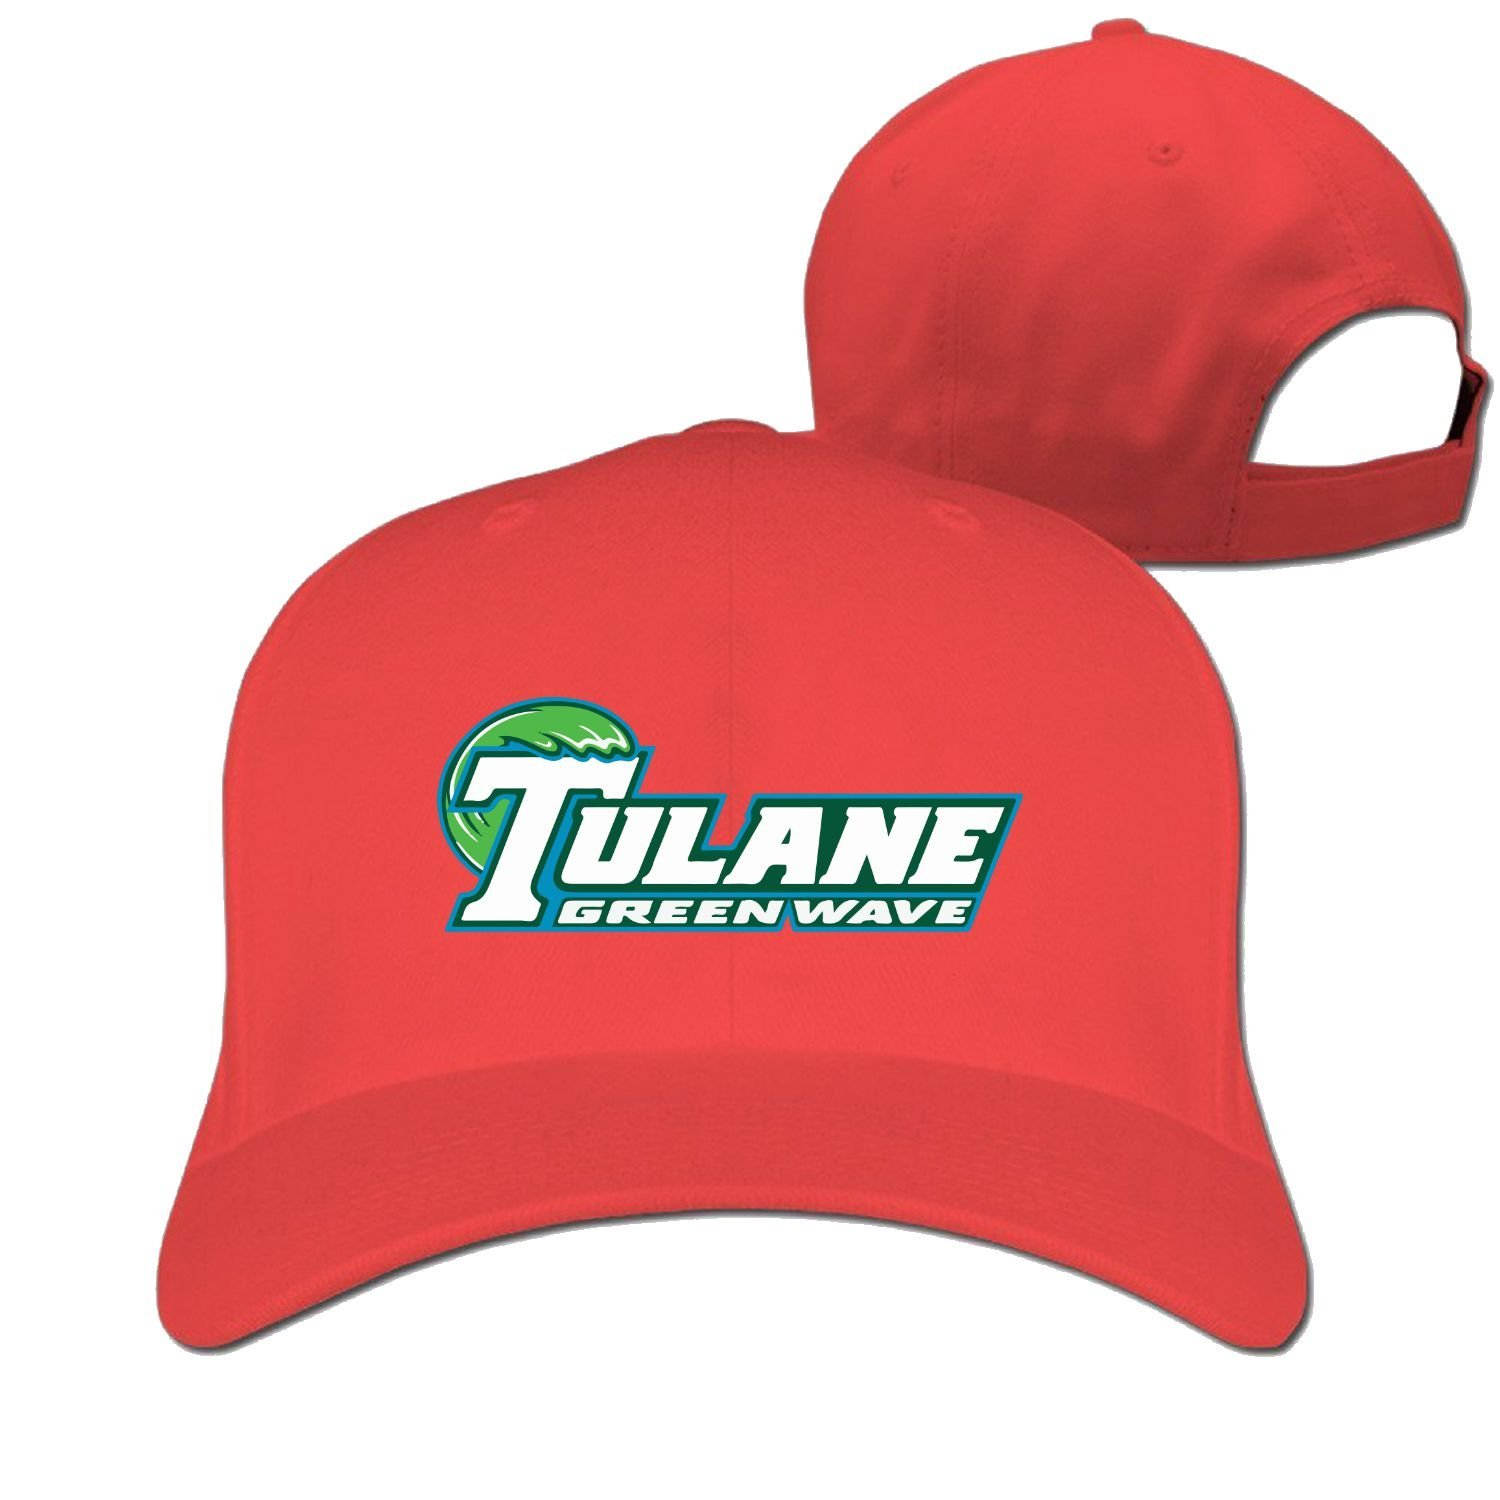 Buy TULANE GREEN CAP WAVE HAT - NCAA FBS - THE GAME - SIZE 7 1 8 PRO ... 7d91f3dad52f